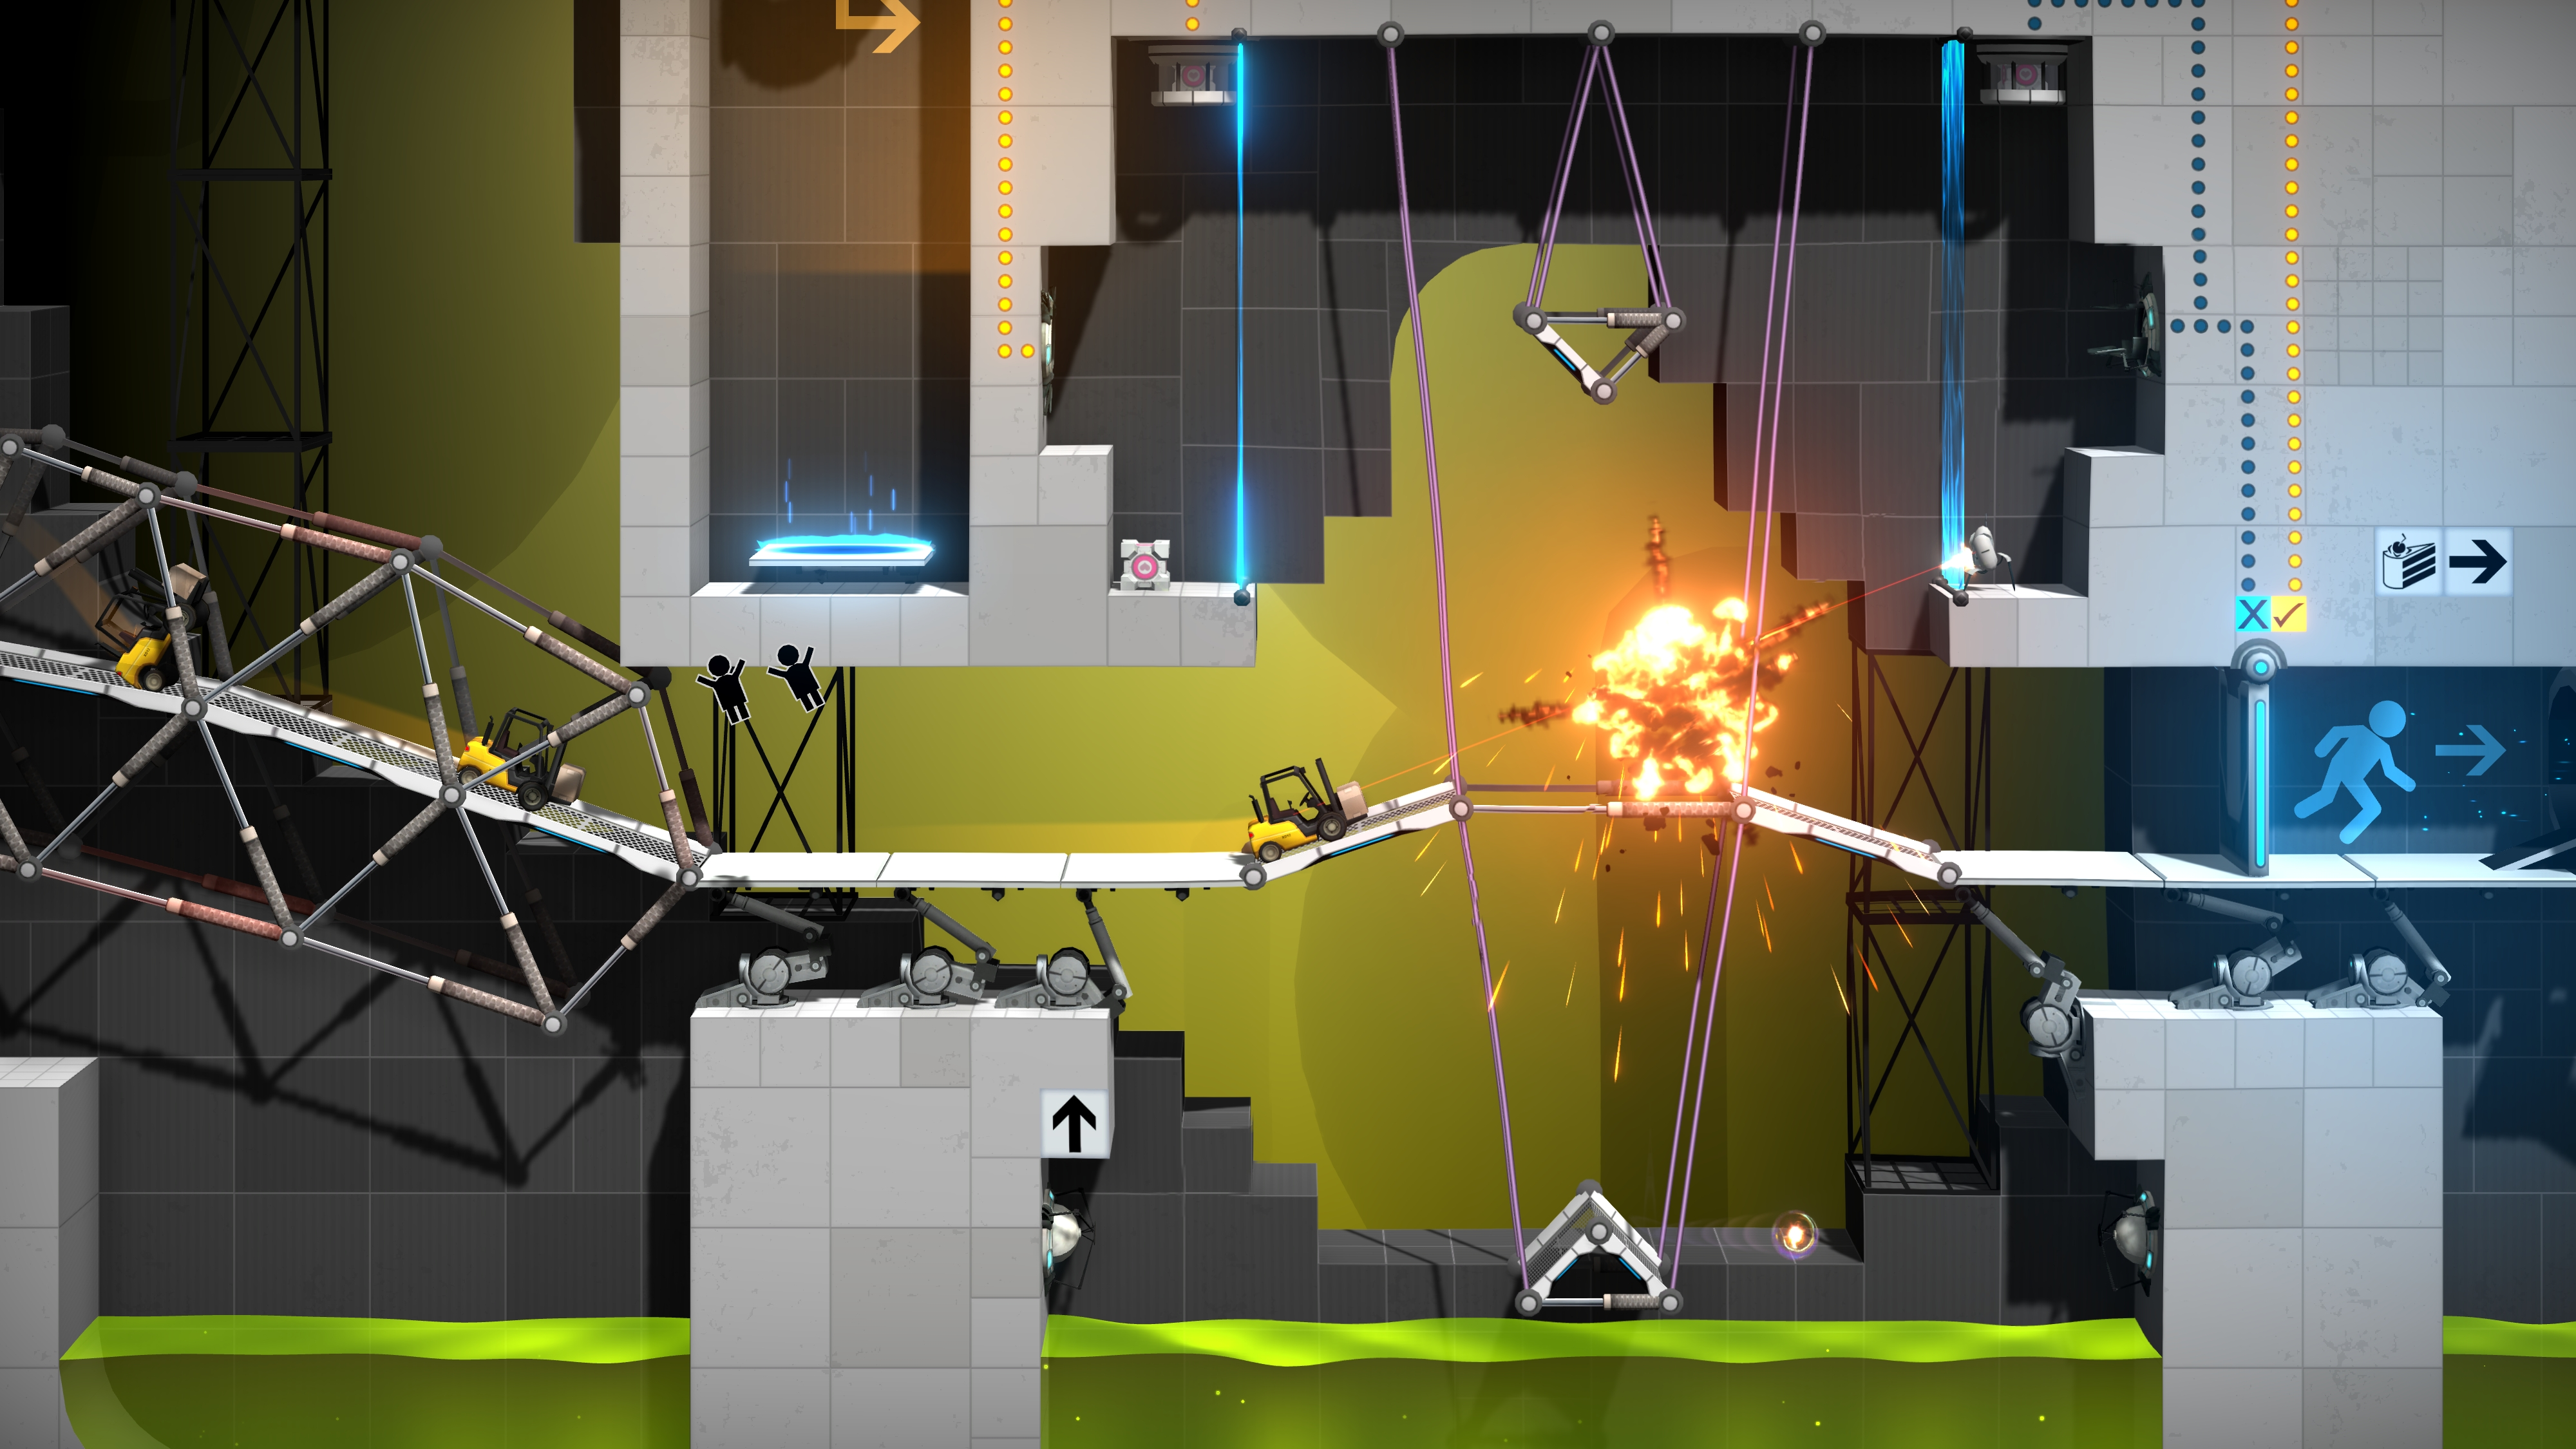 Bridge Constructor Portal Taking You to Aperture Sciences in 2018